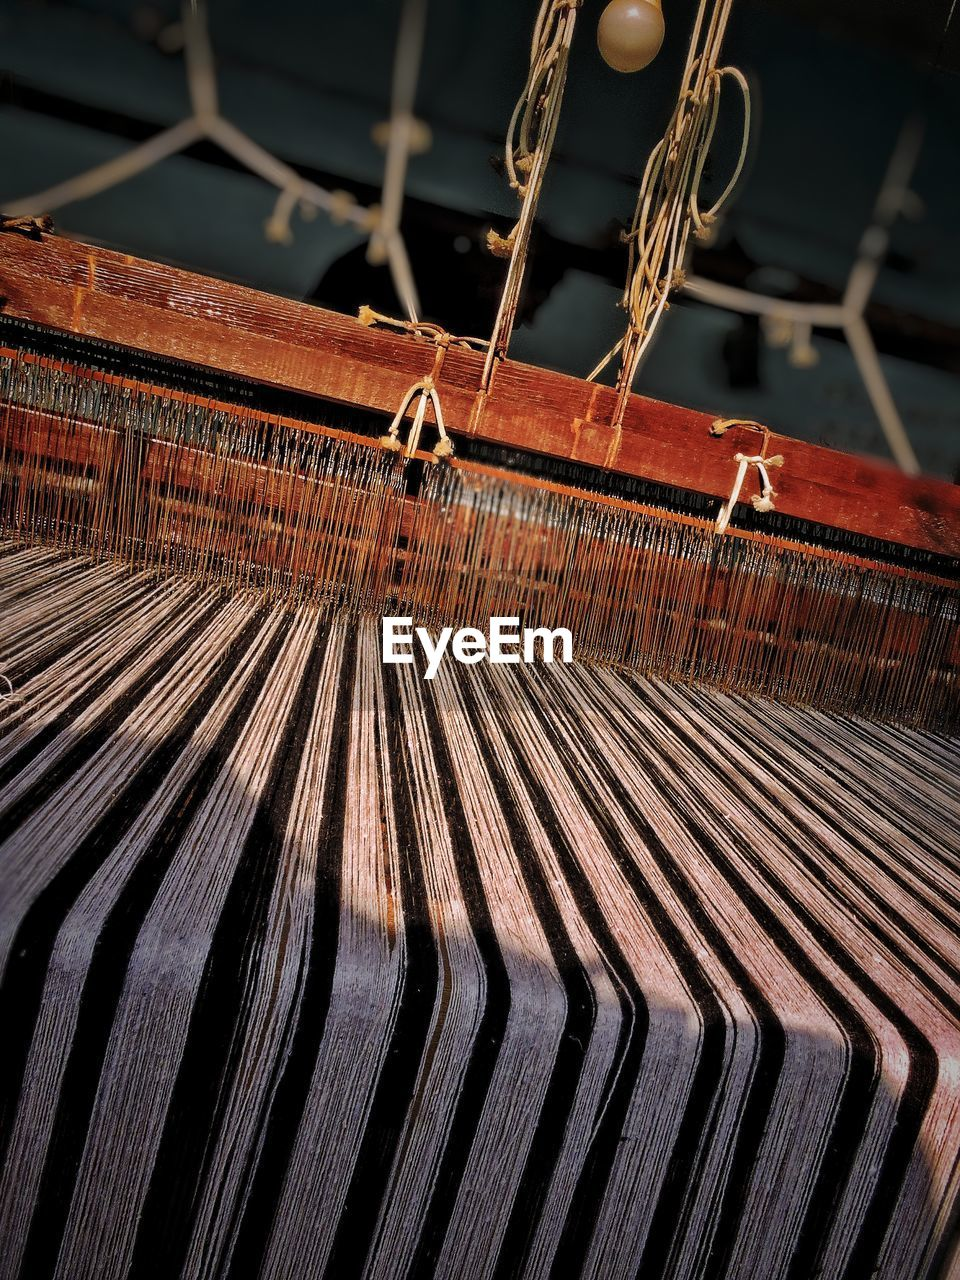 Close-up of handloom in factory